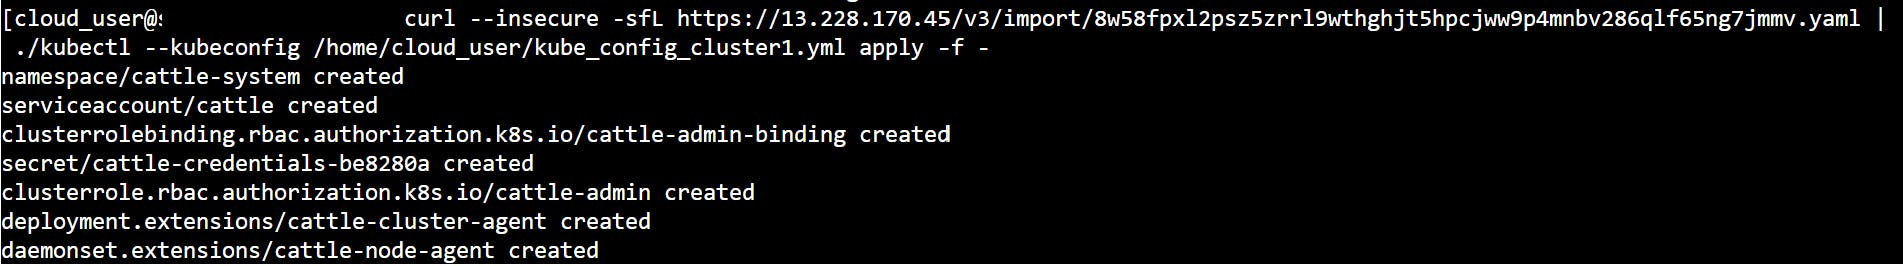 applying yaml file to the RKE cluster for rancher import